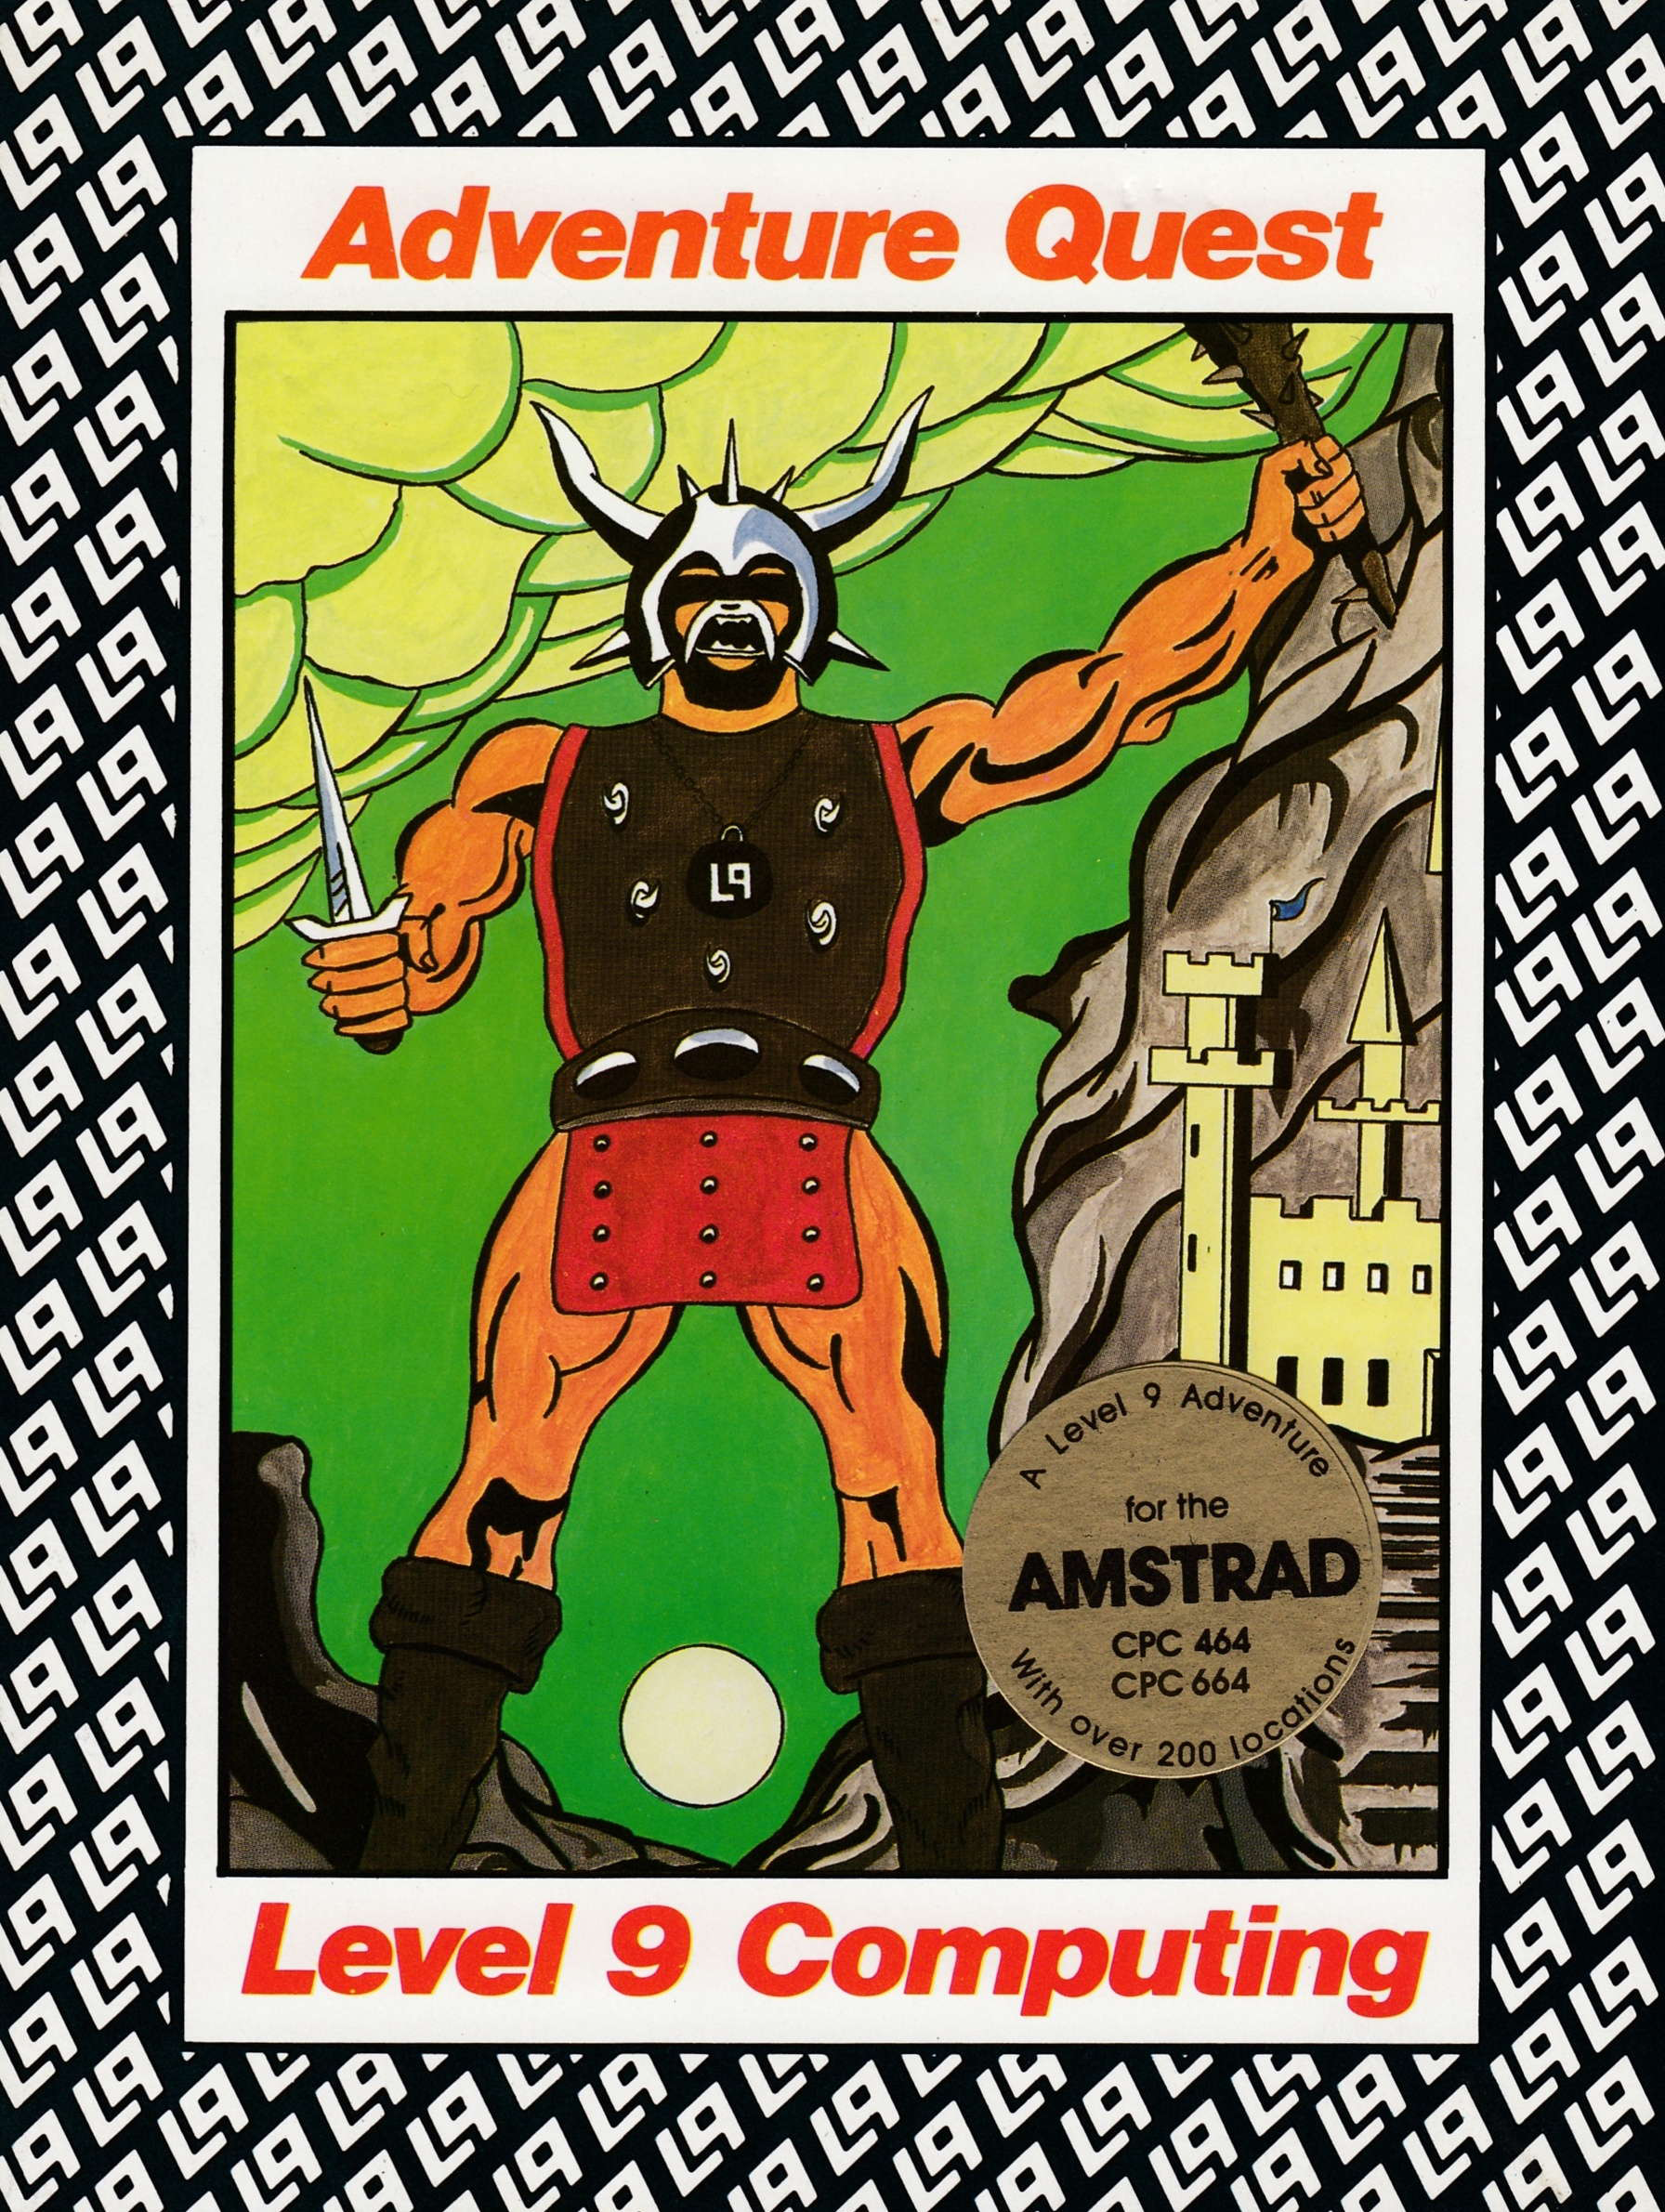 screenshot of the Amstrad CPC game Adventure quest by GameBase CPC